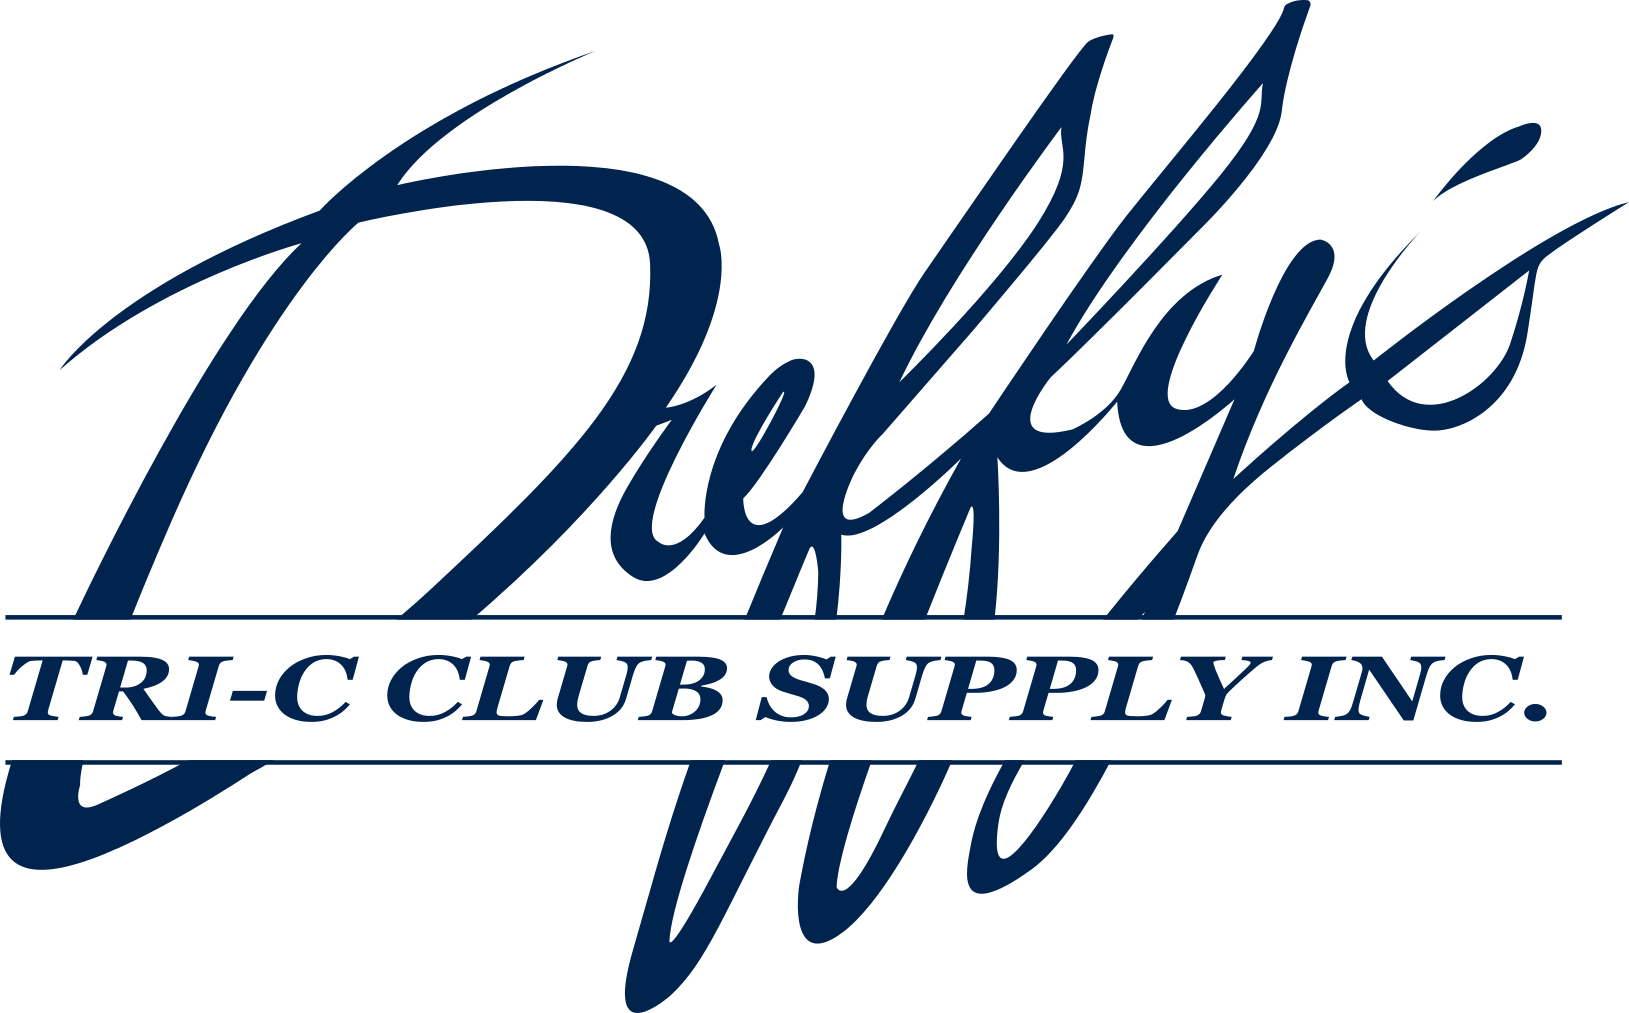 Tri-C Club Supply - Duffys